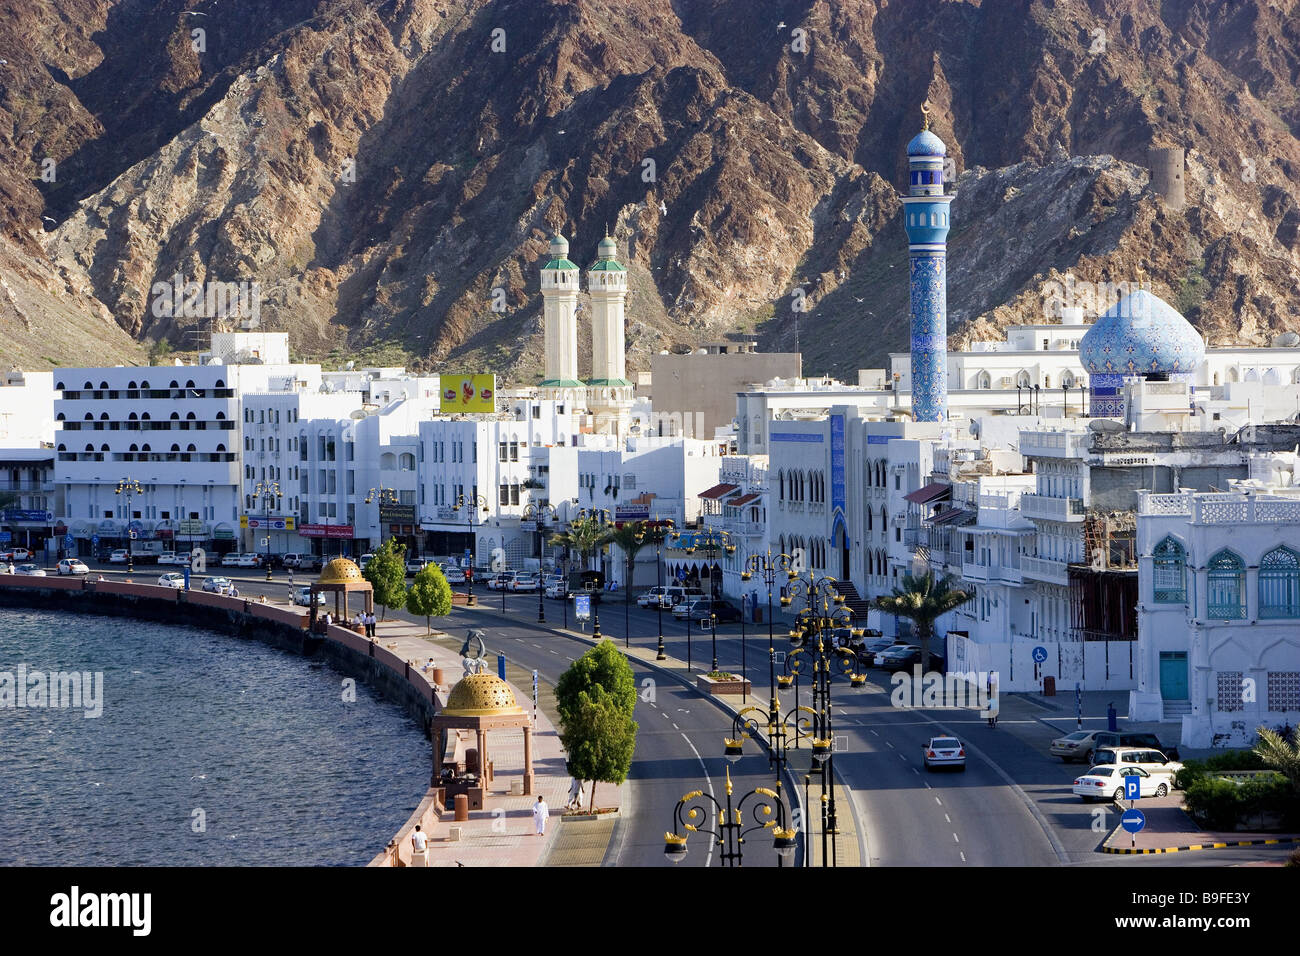 Oman Muscat Dhow Bay city view street scenery sultanate city capital